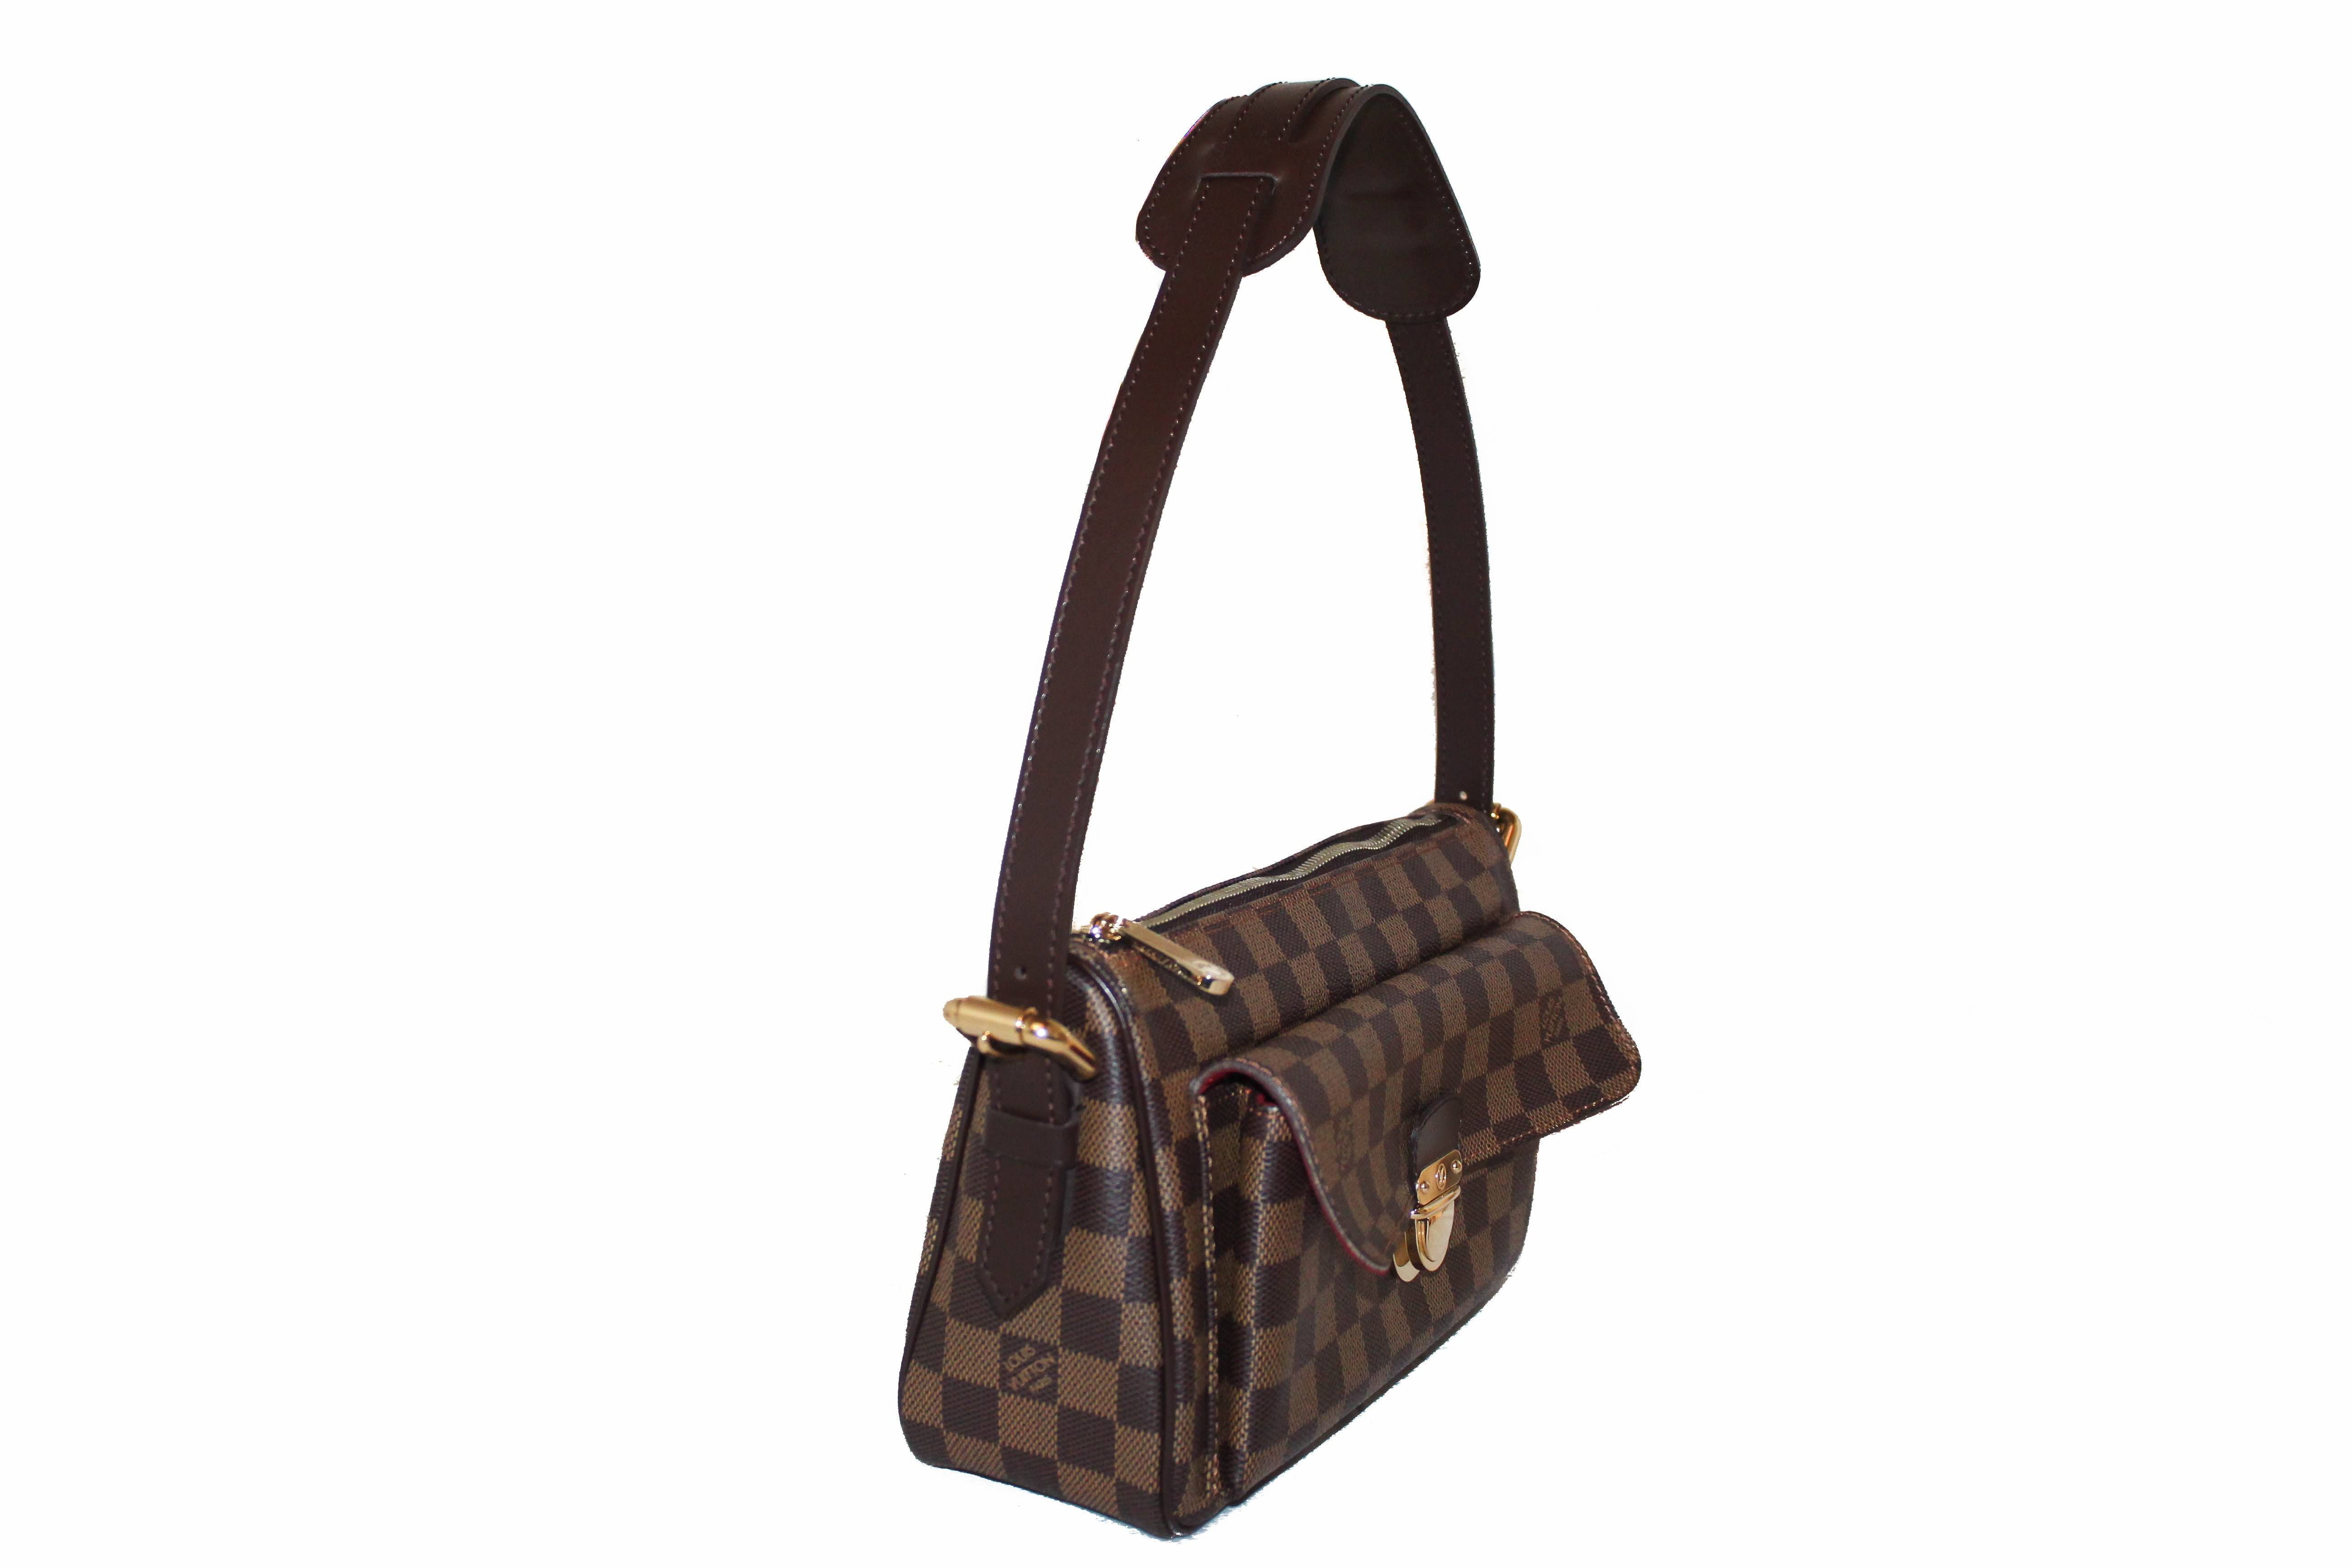 Authentic Louis Vuitton Damier Ebene Ravello GM Shoulder Bag